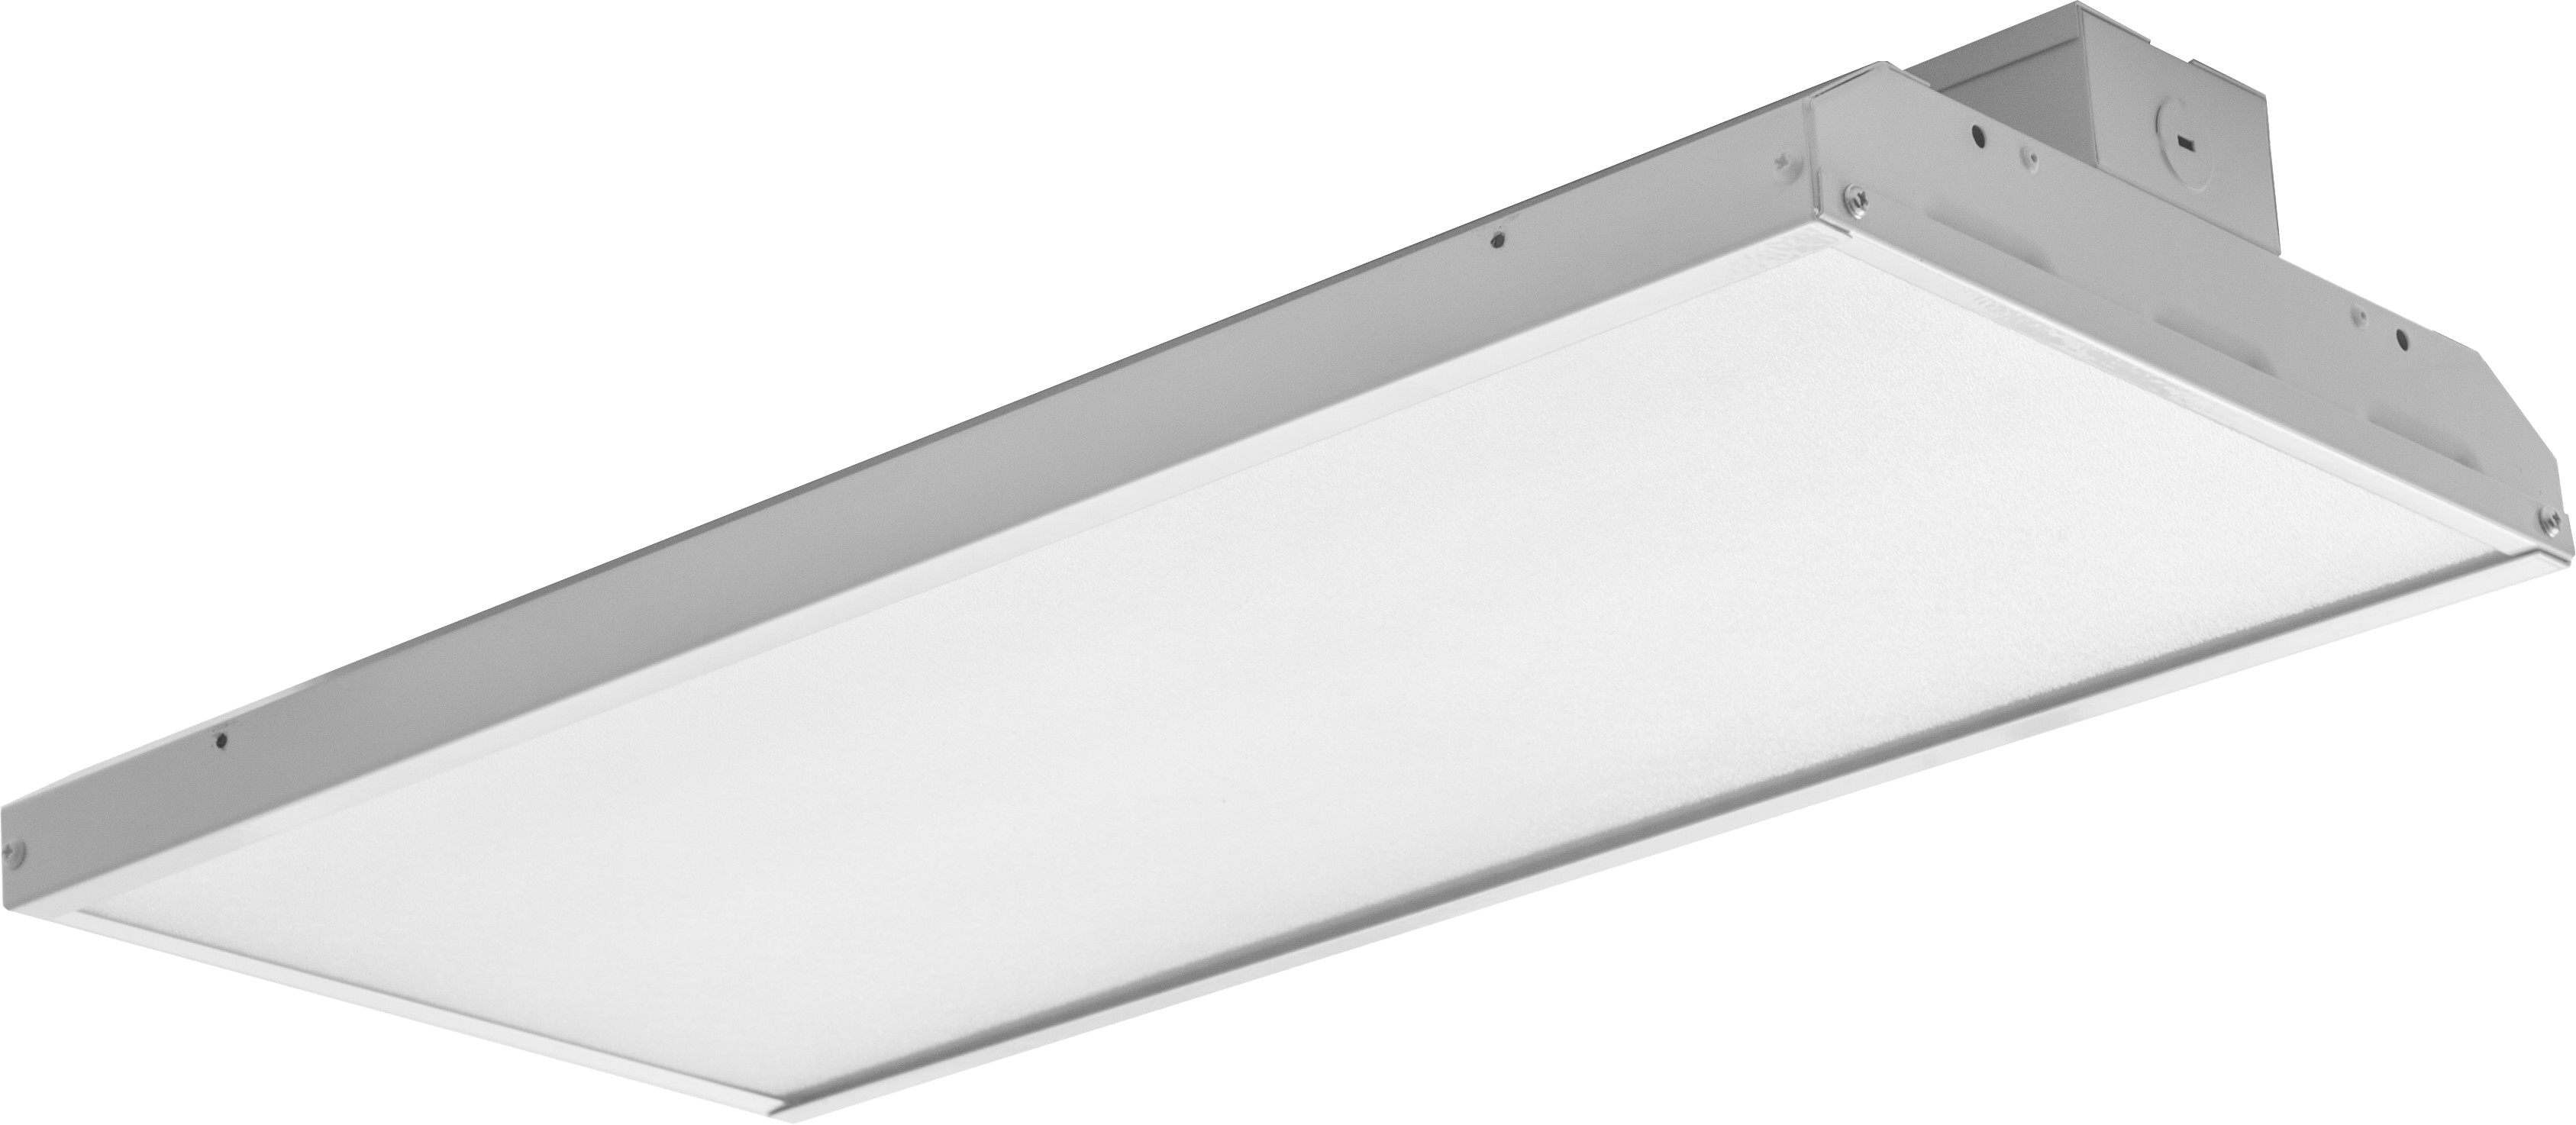 eik 09539 EIK LLH-2C-50K-U LED LINEAR HIGHBAY 2 FT. DLC V4.0 PREMIU